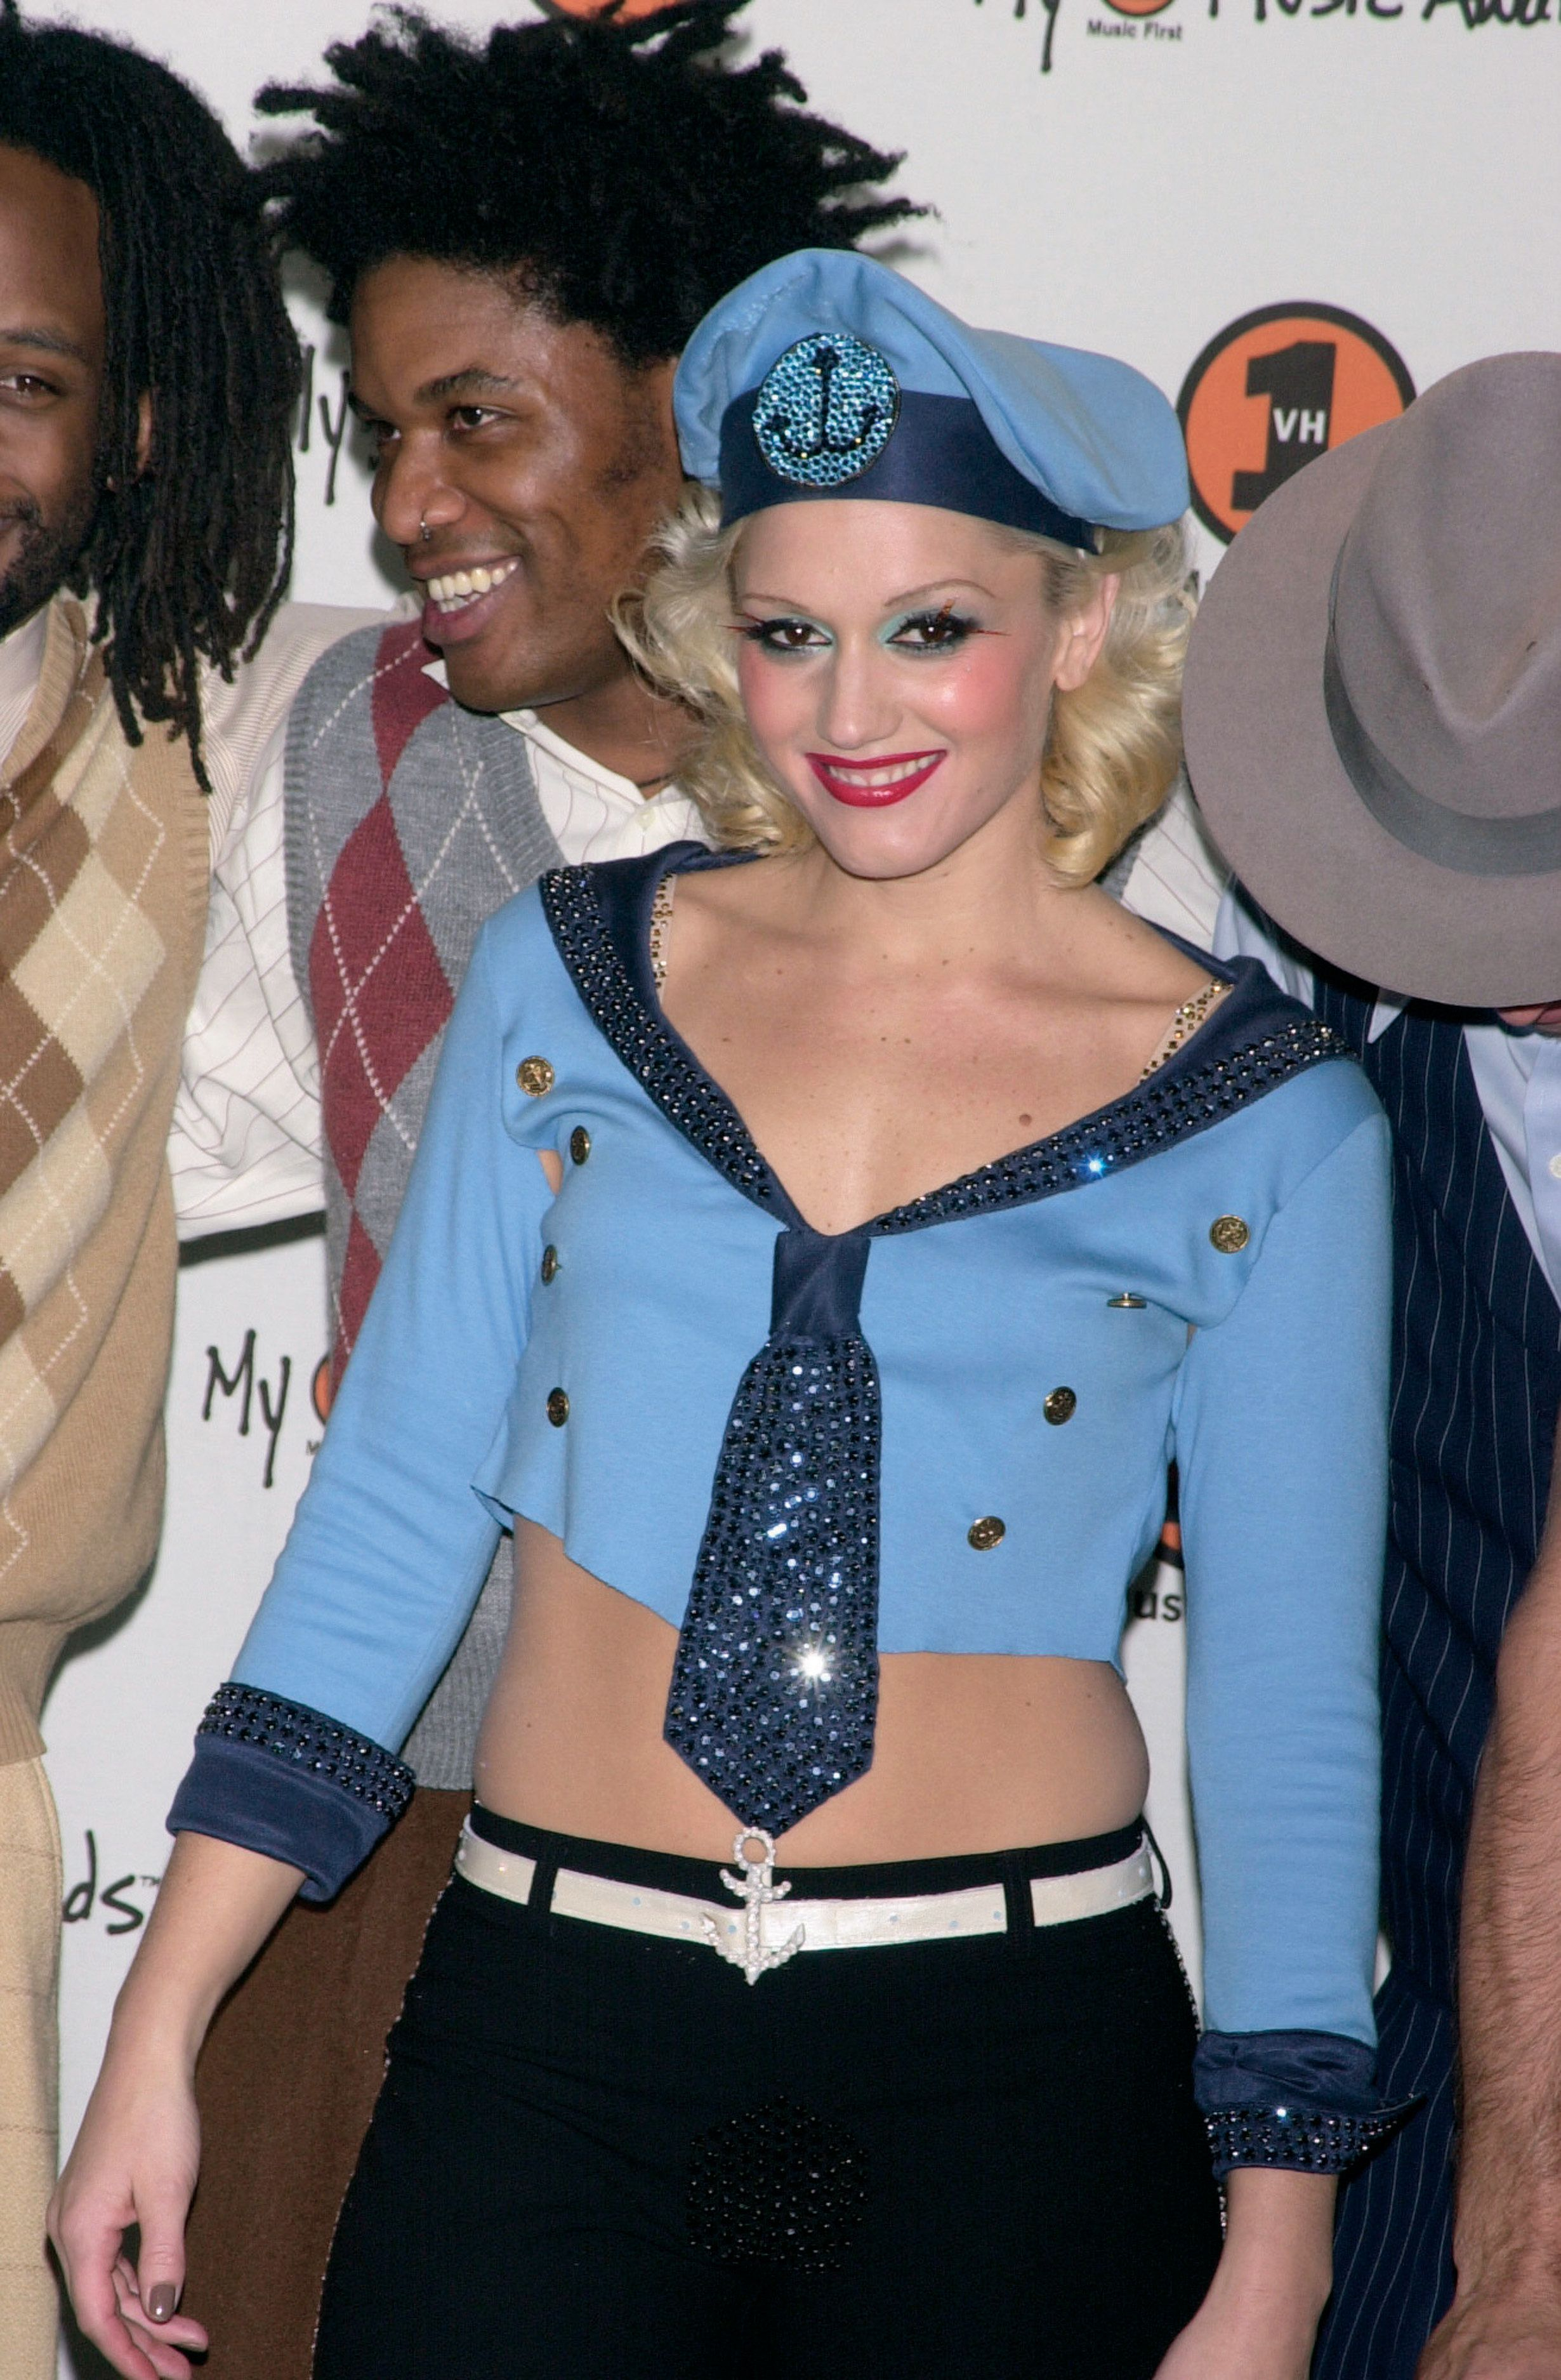 62 Photos Of Gwen Stefani's Iconic Style Through The